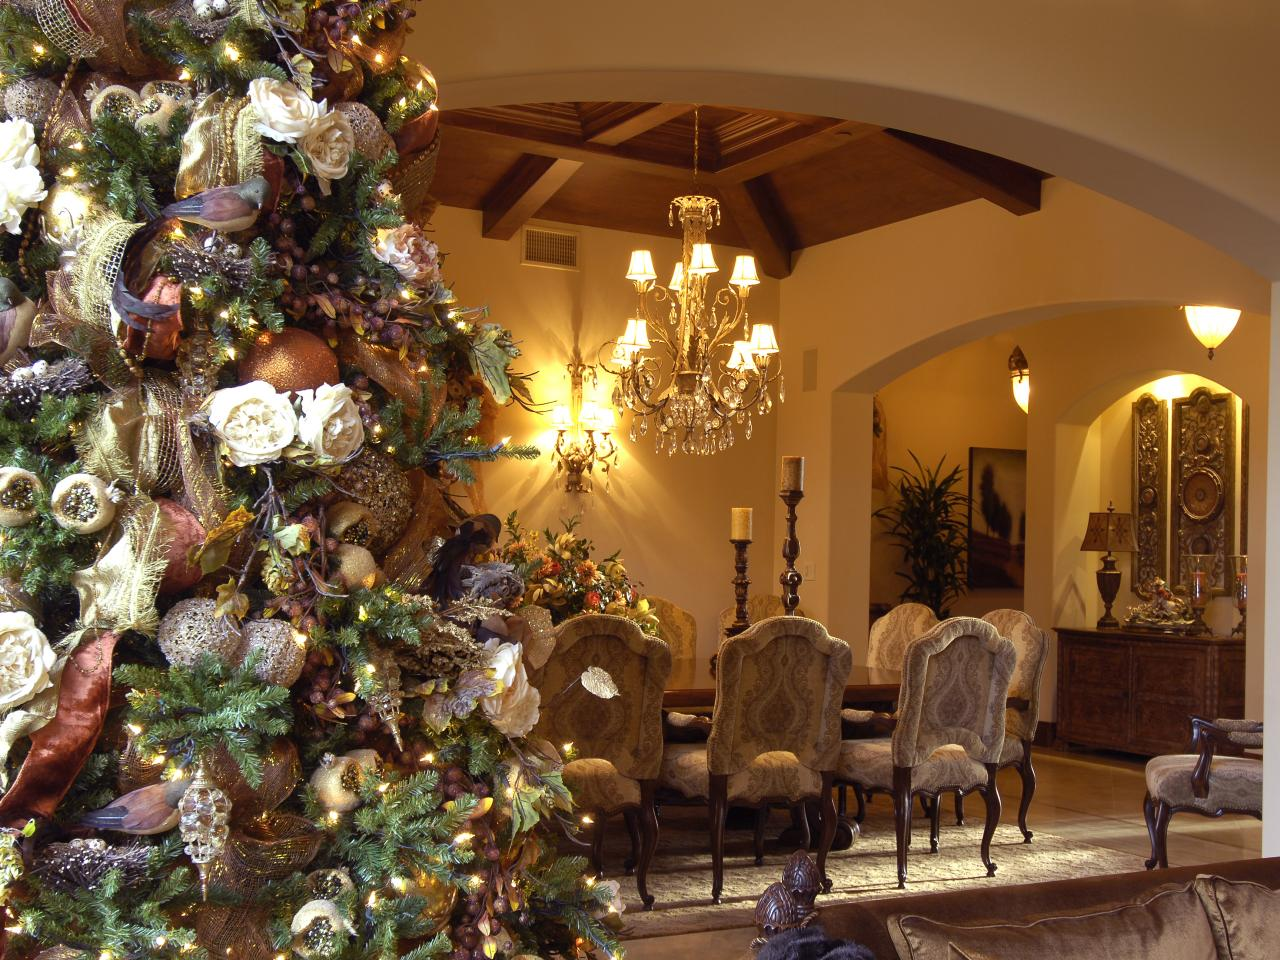 Christmas tree decorating ideas interior design styles House beautiful christmas trees